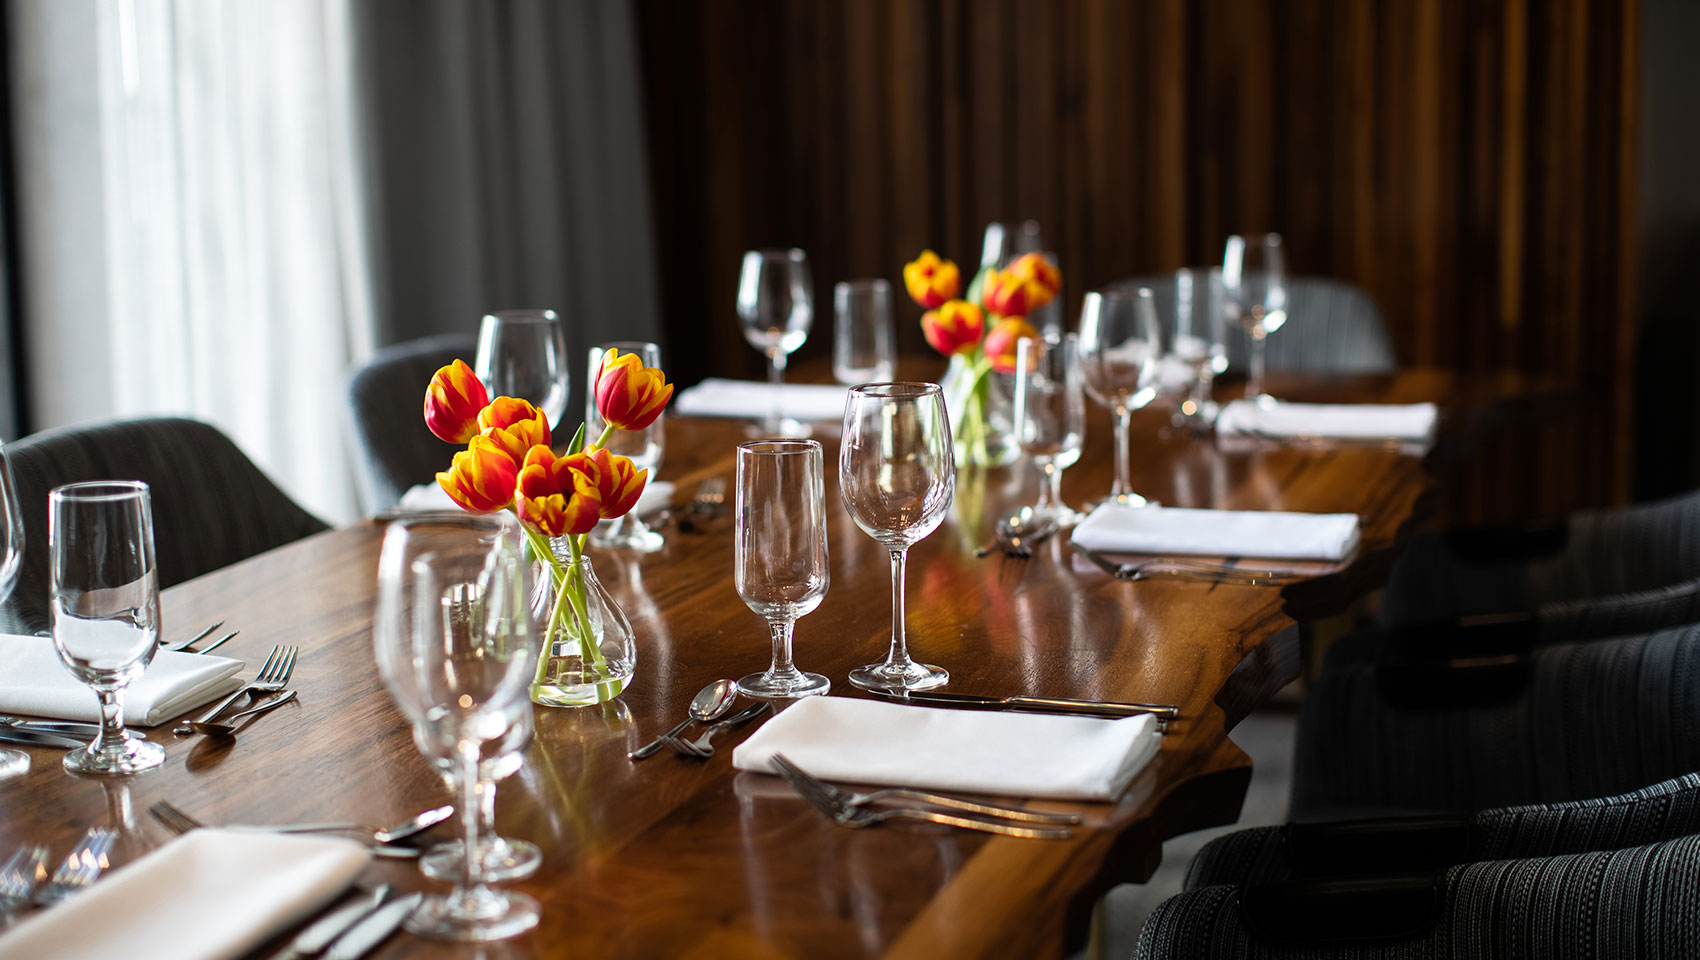 Private dining room set up in Calder room located in Kimpton Hotel Palomar Philadelphia glassware and floral arrangements in the center of a long wood table with chairs surrounding